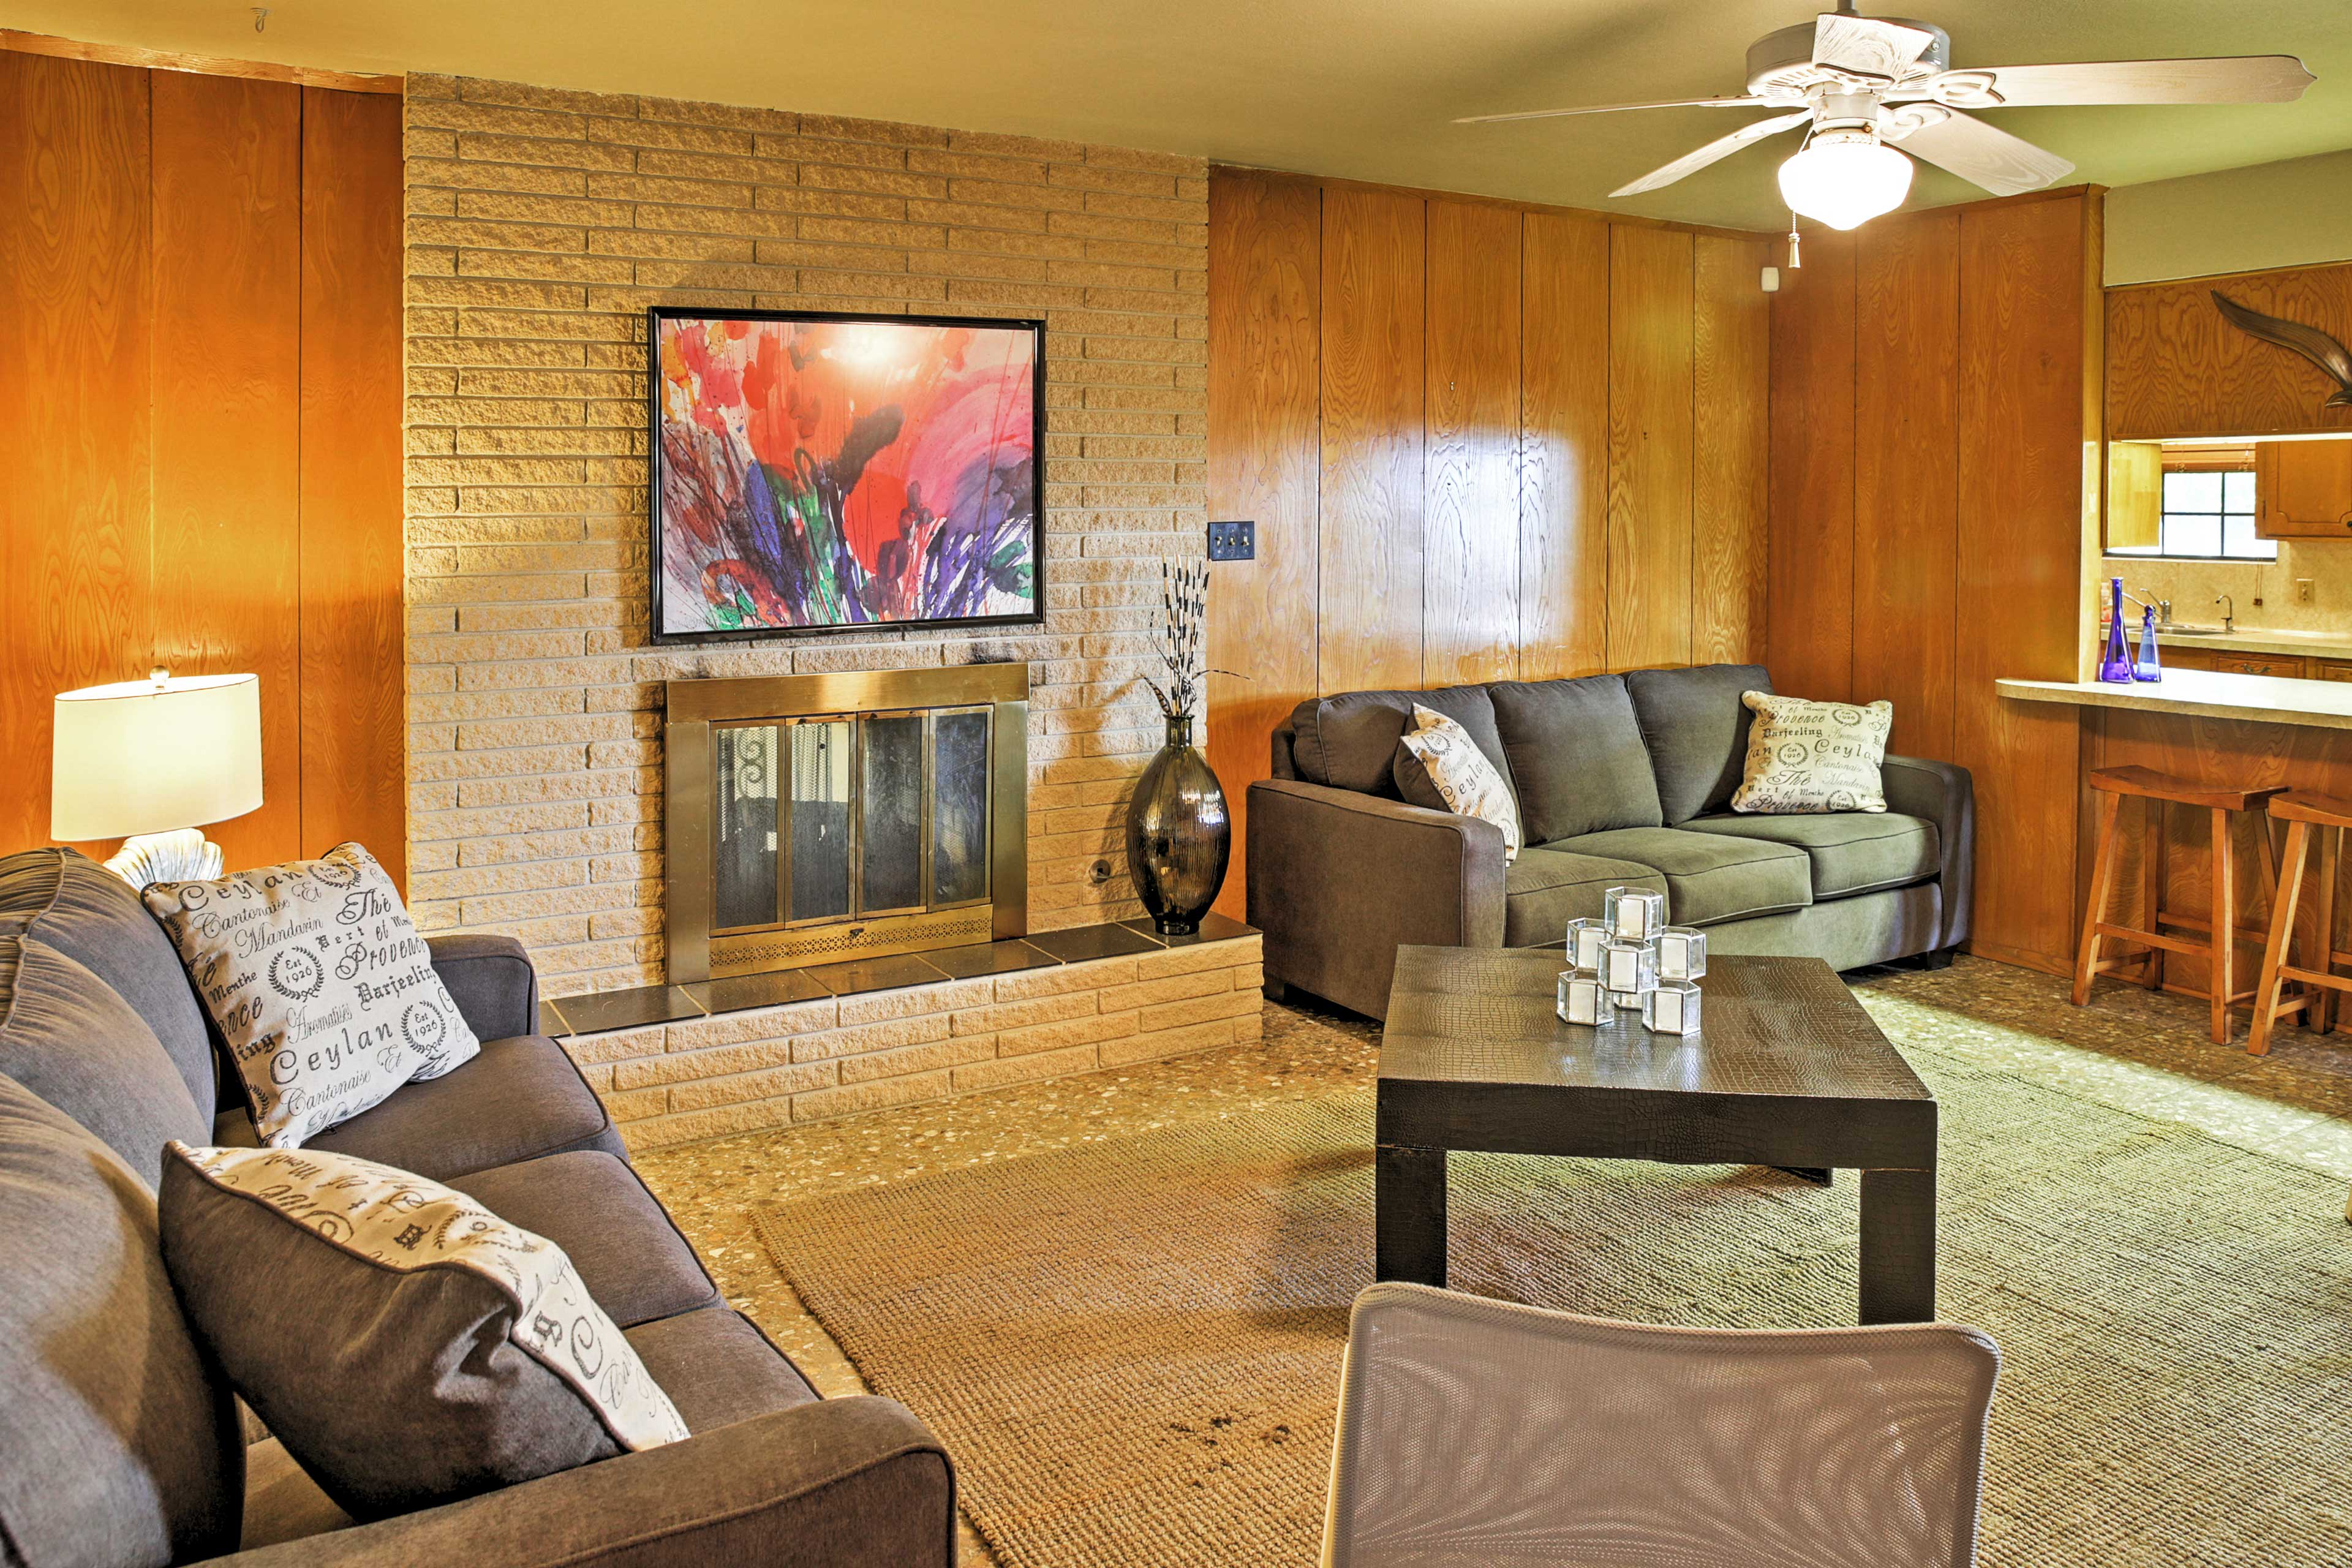 Lounge on the comfy couches in the living area.